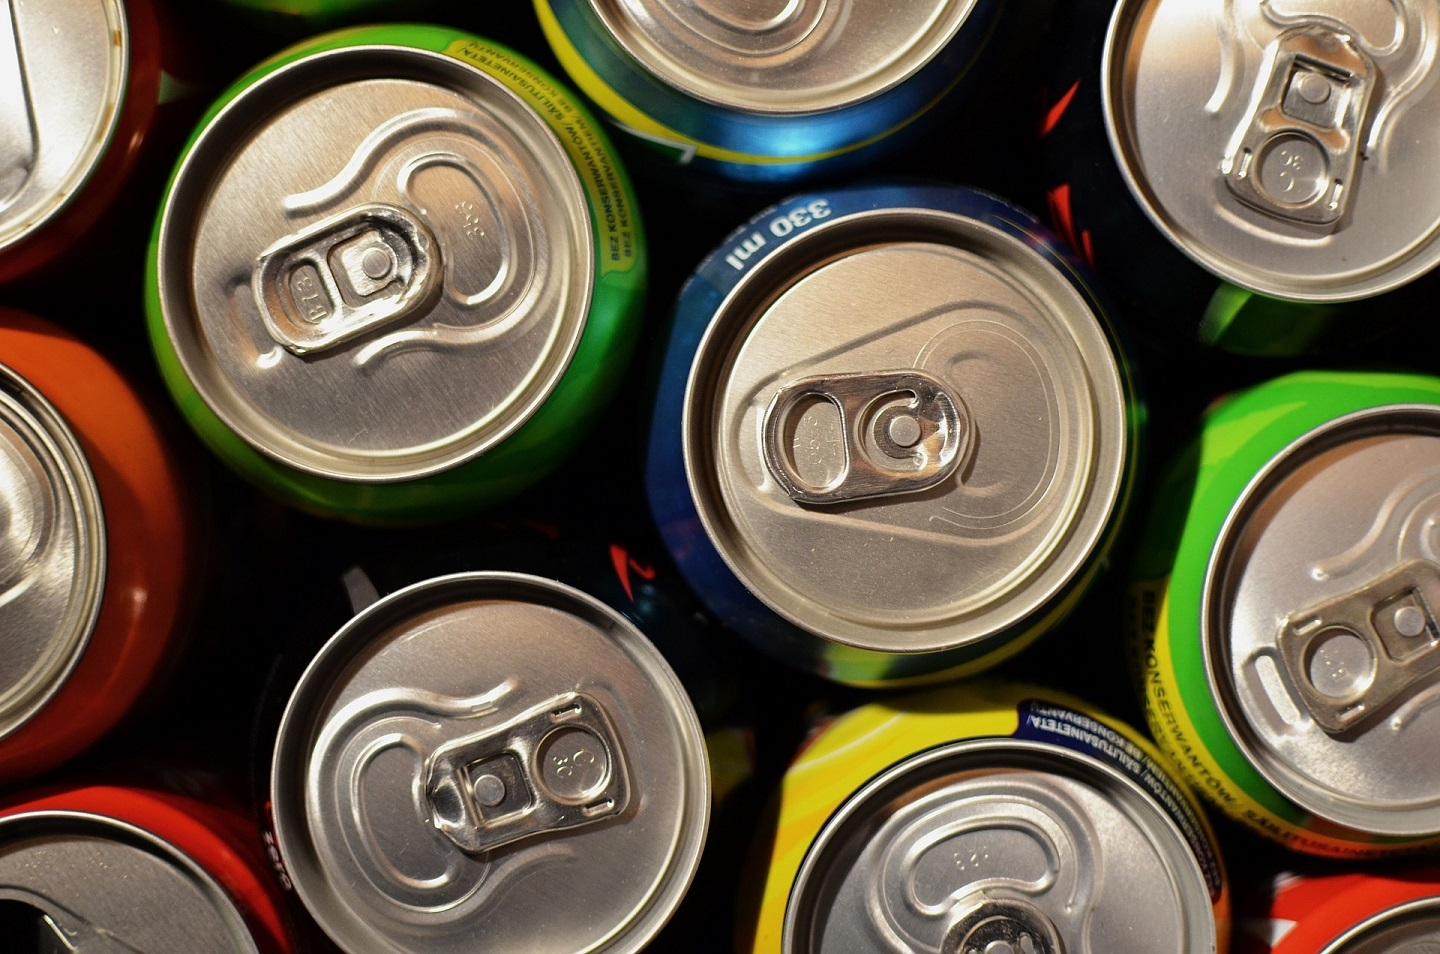 The Alumina Chronicles: The Impact On Recycling Of Aluminum  Cans That Use Non-Aluminum Labels